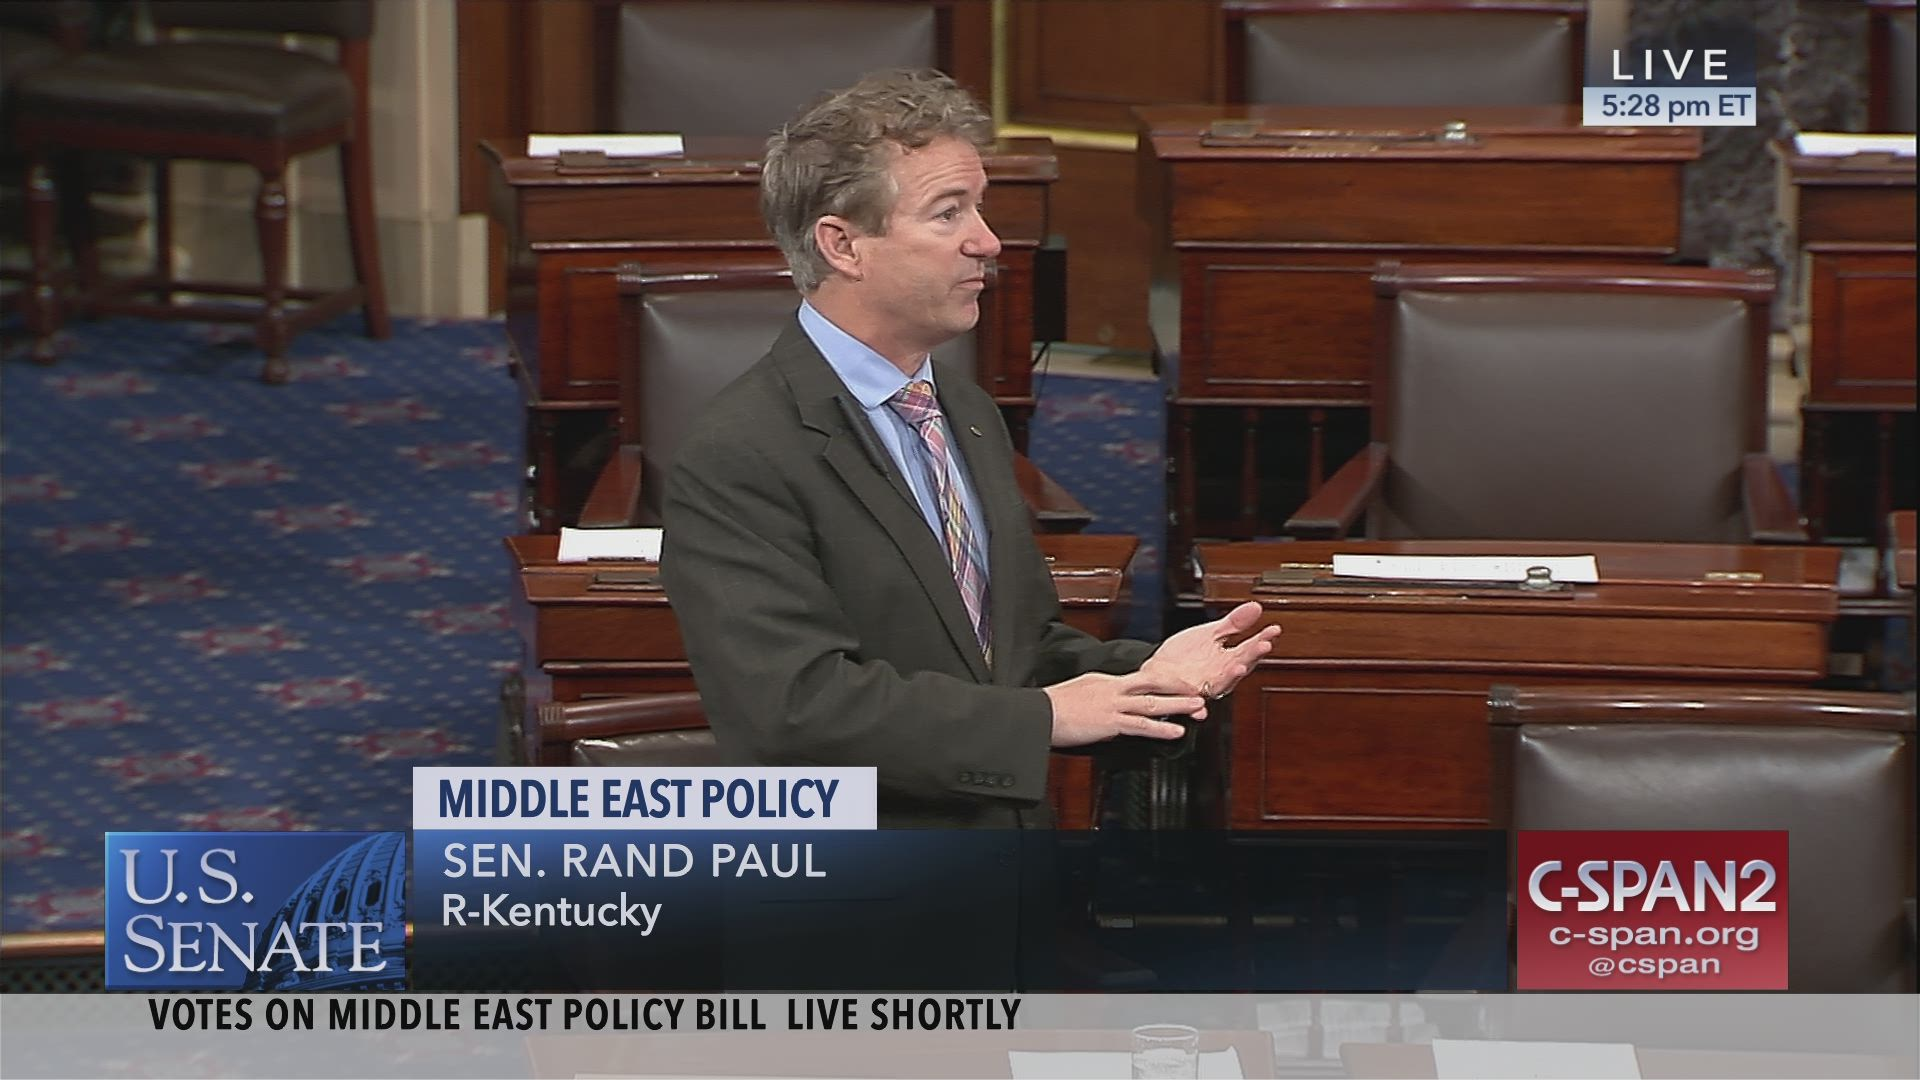 Where Rand Pauls Small Government Credo >> 2 4 19 Rand Paul Bds S 1 That Violates Our 1a C Span Org